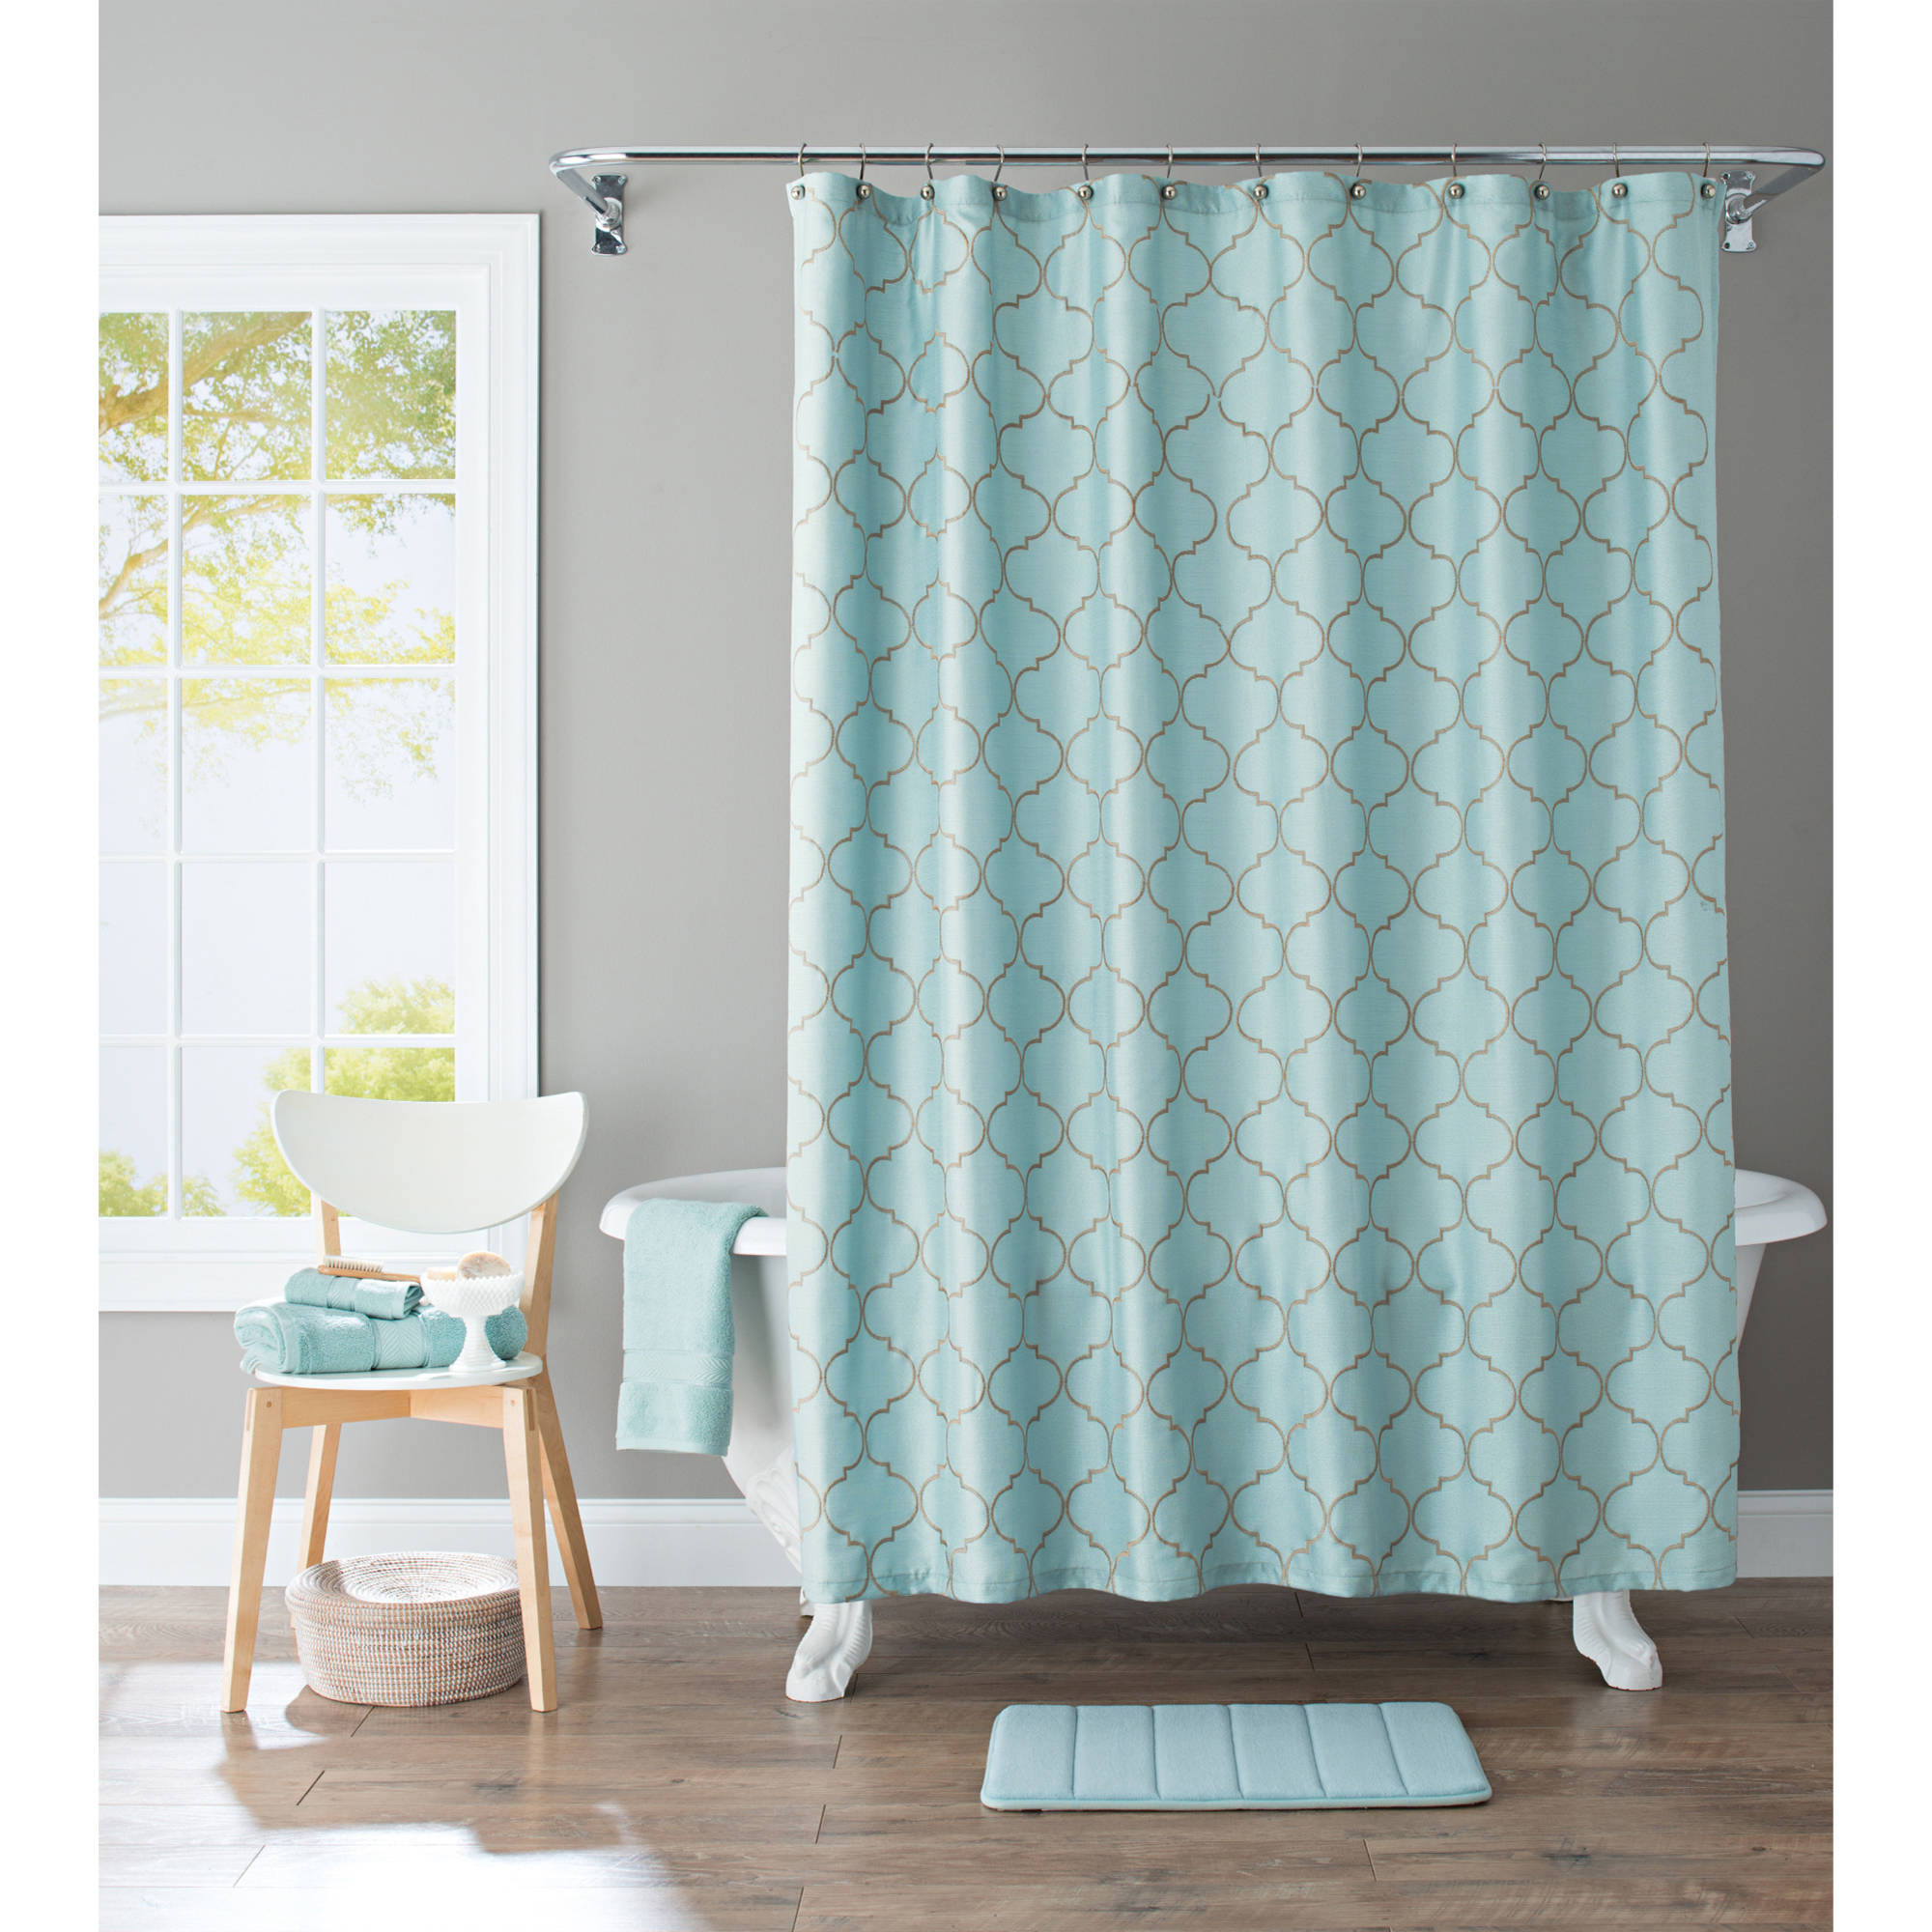 Coffee Tables Seashell Shower Curtain Sets White Seashell Shower in measurements 2000 X 2000